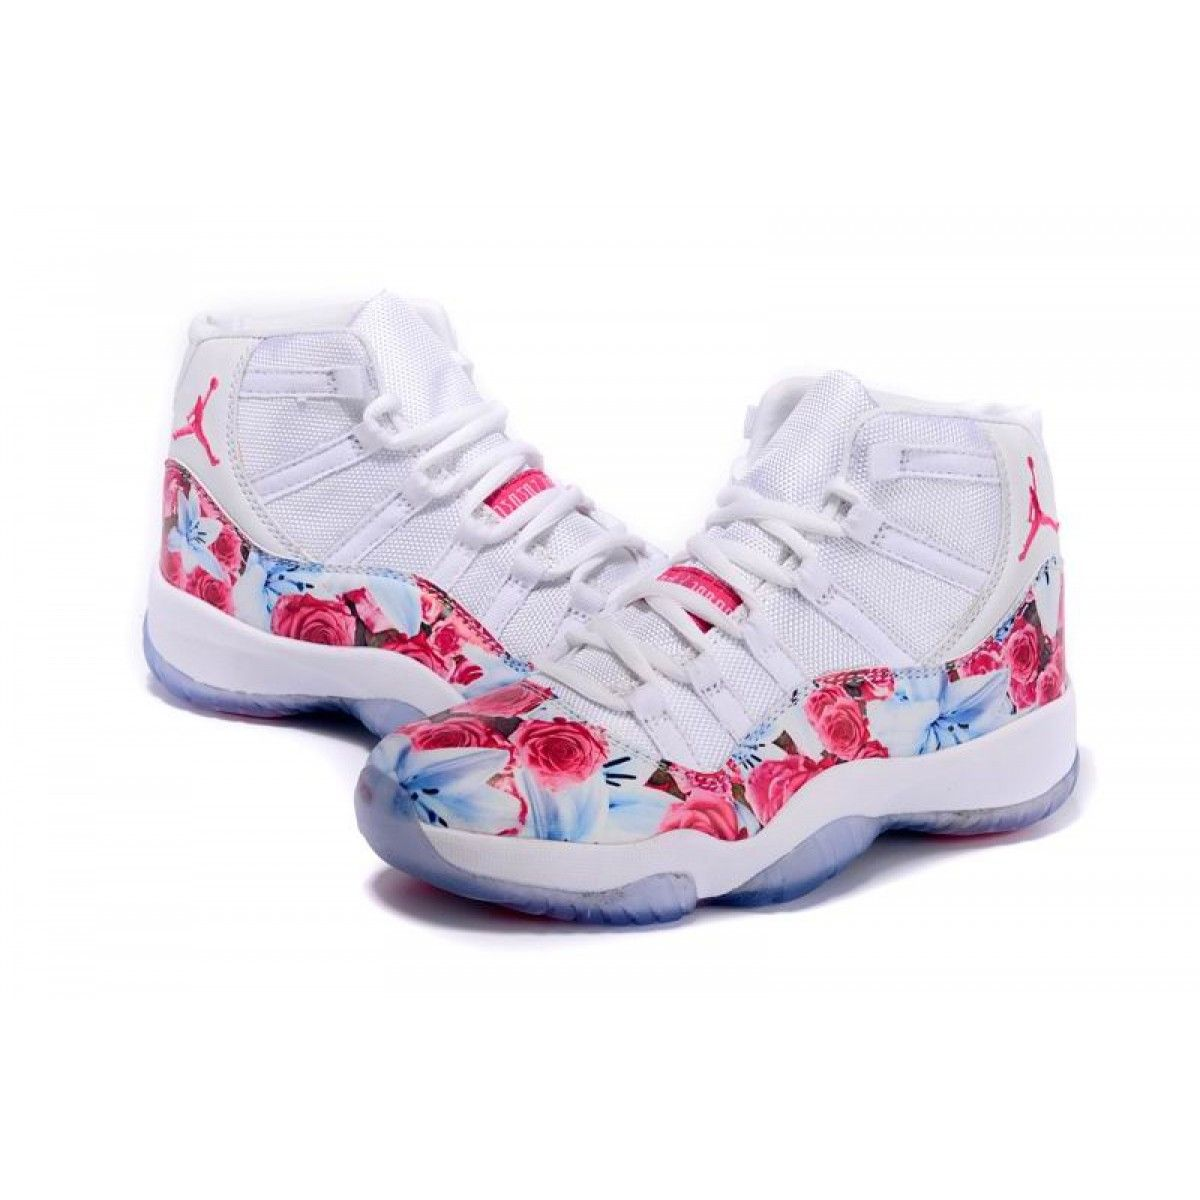 Womens Air Jordan 11 Floral Vivid White/Pink Shoes